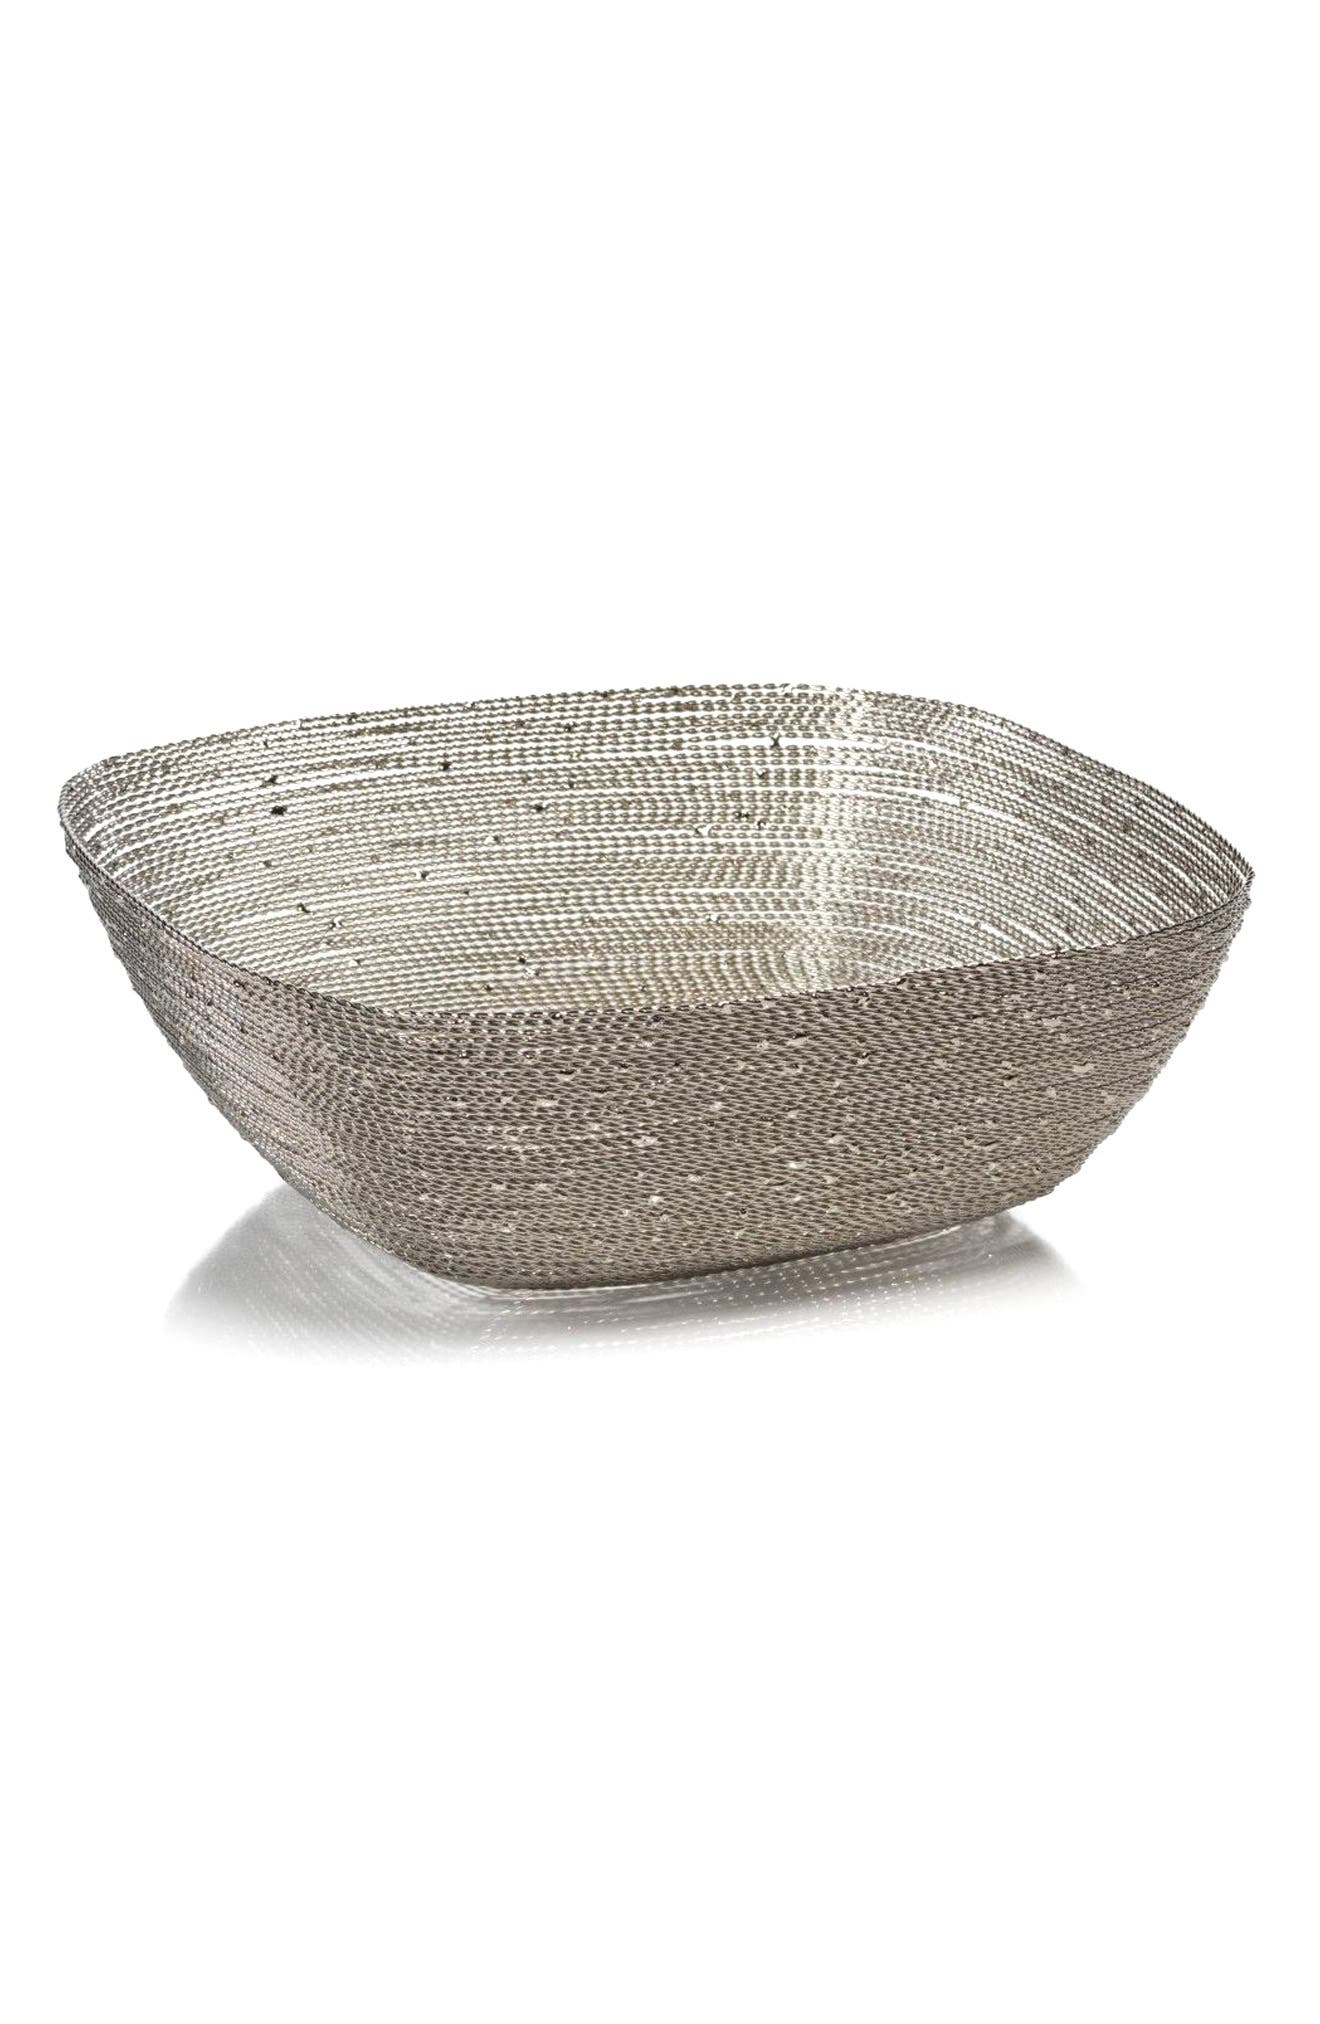 Zulu Large Square Woven Wire Basket,                             Main thumbnail 1, color,                             Silver